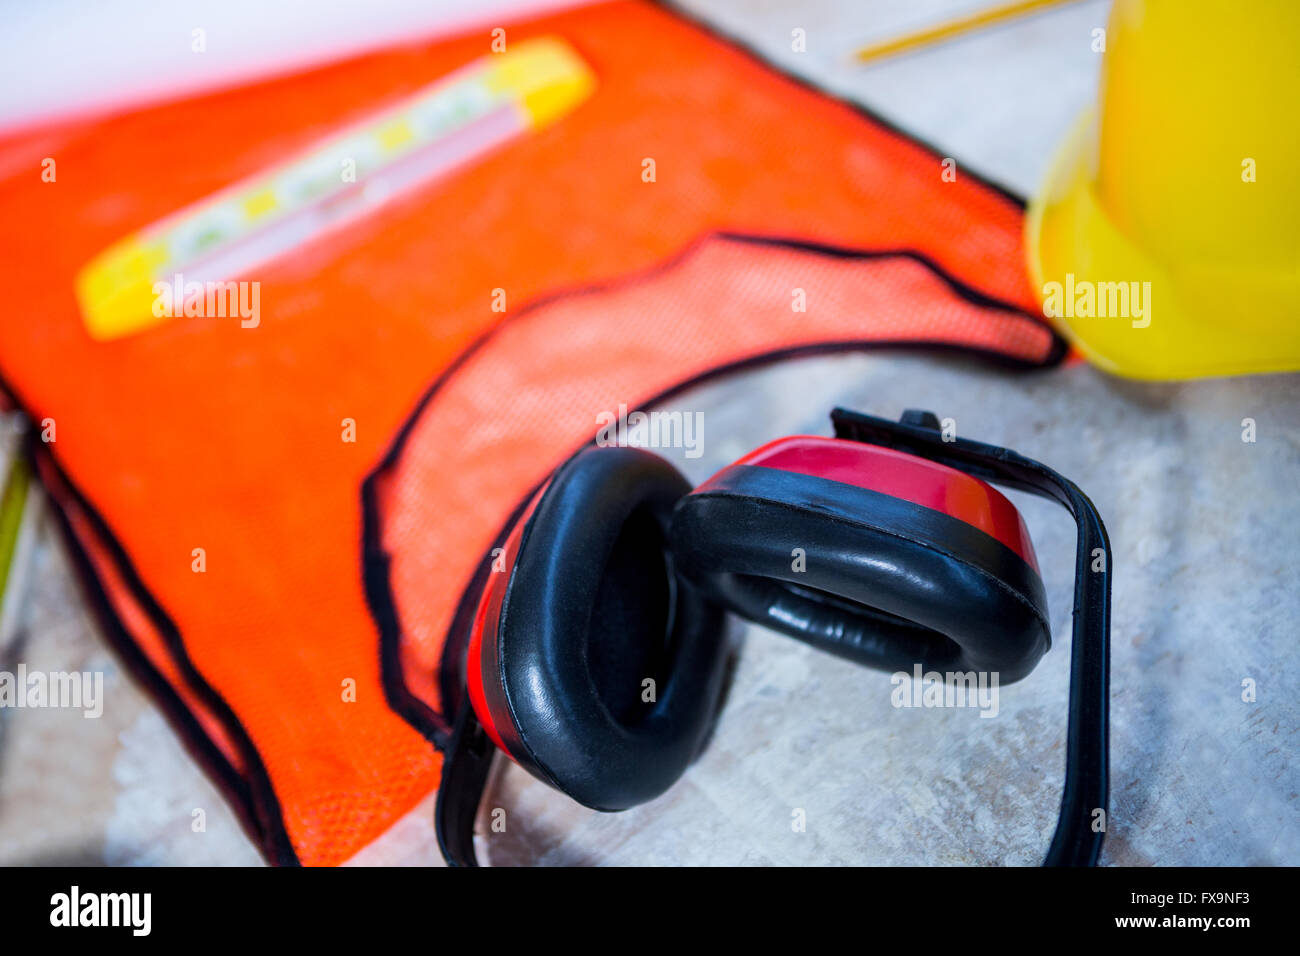 Carpenters safety equipment - Stock Image